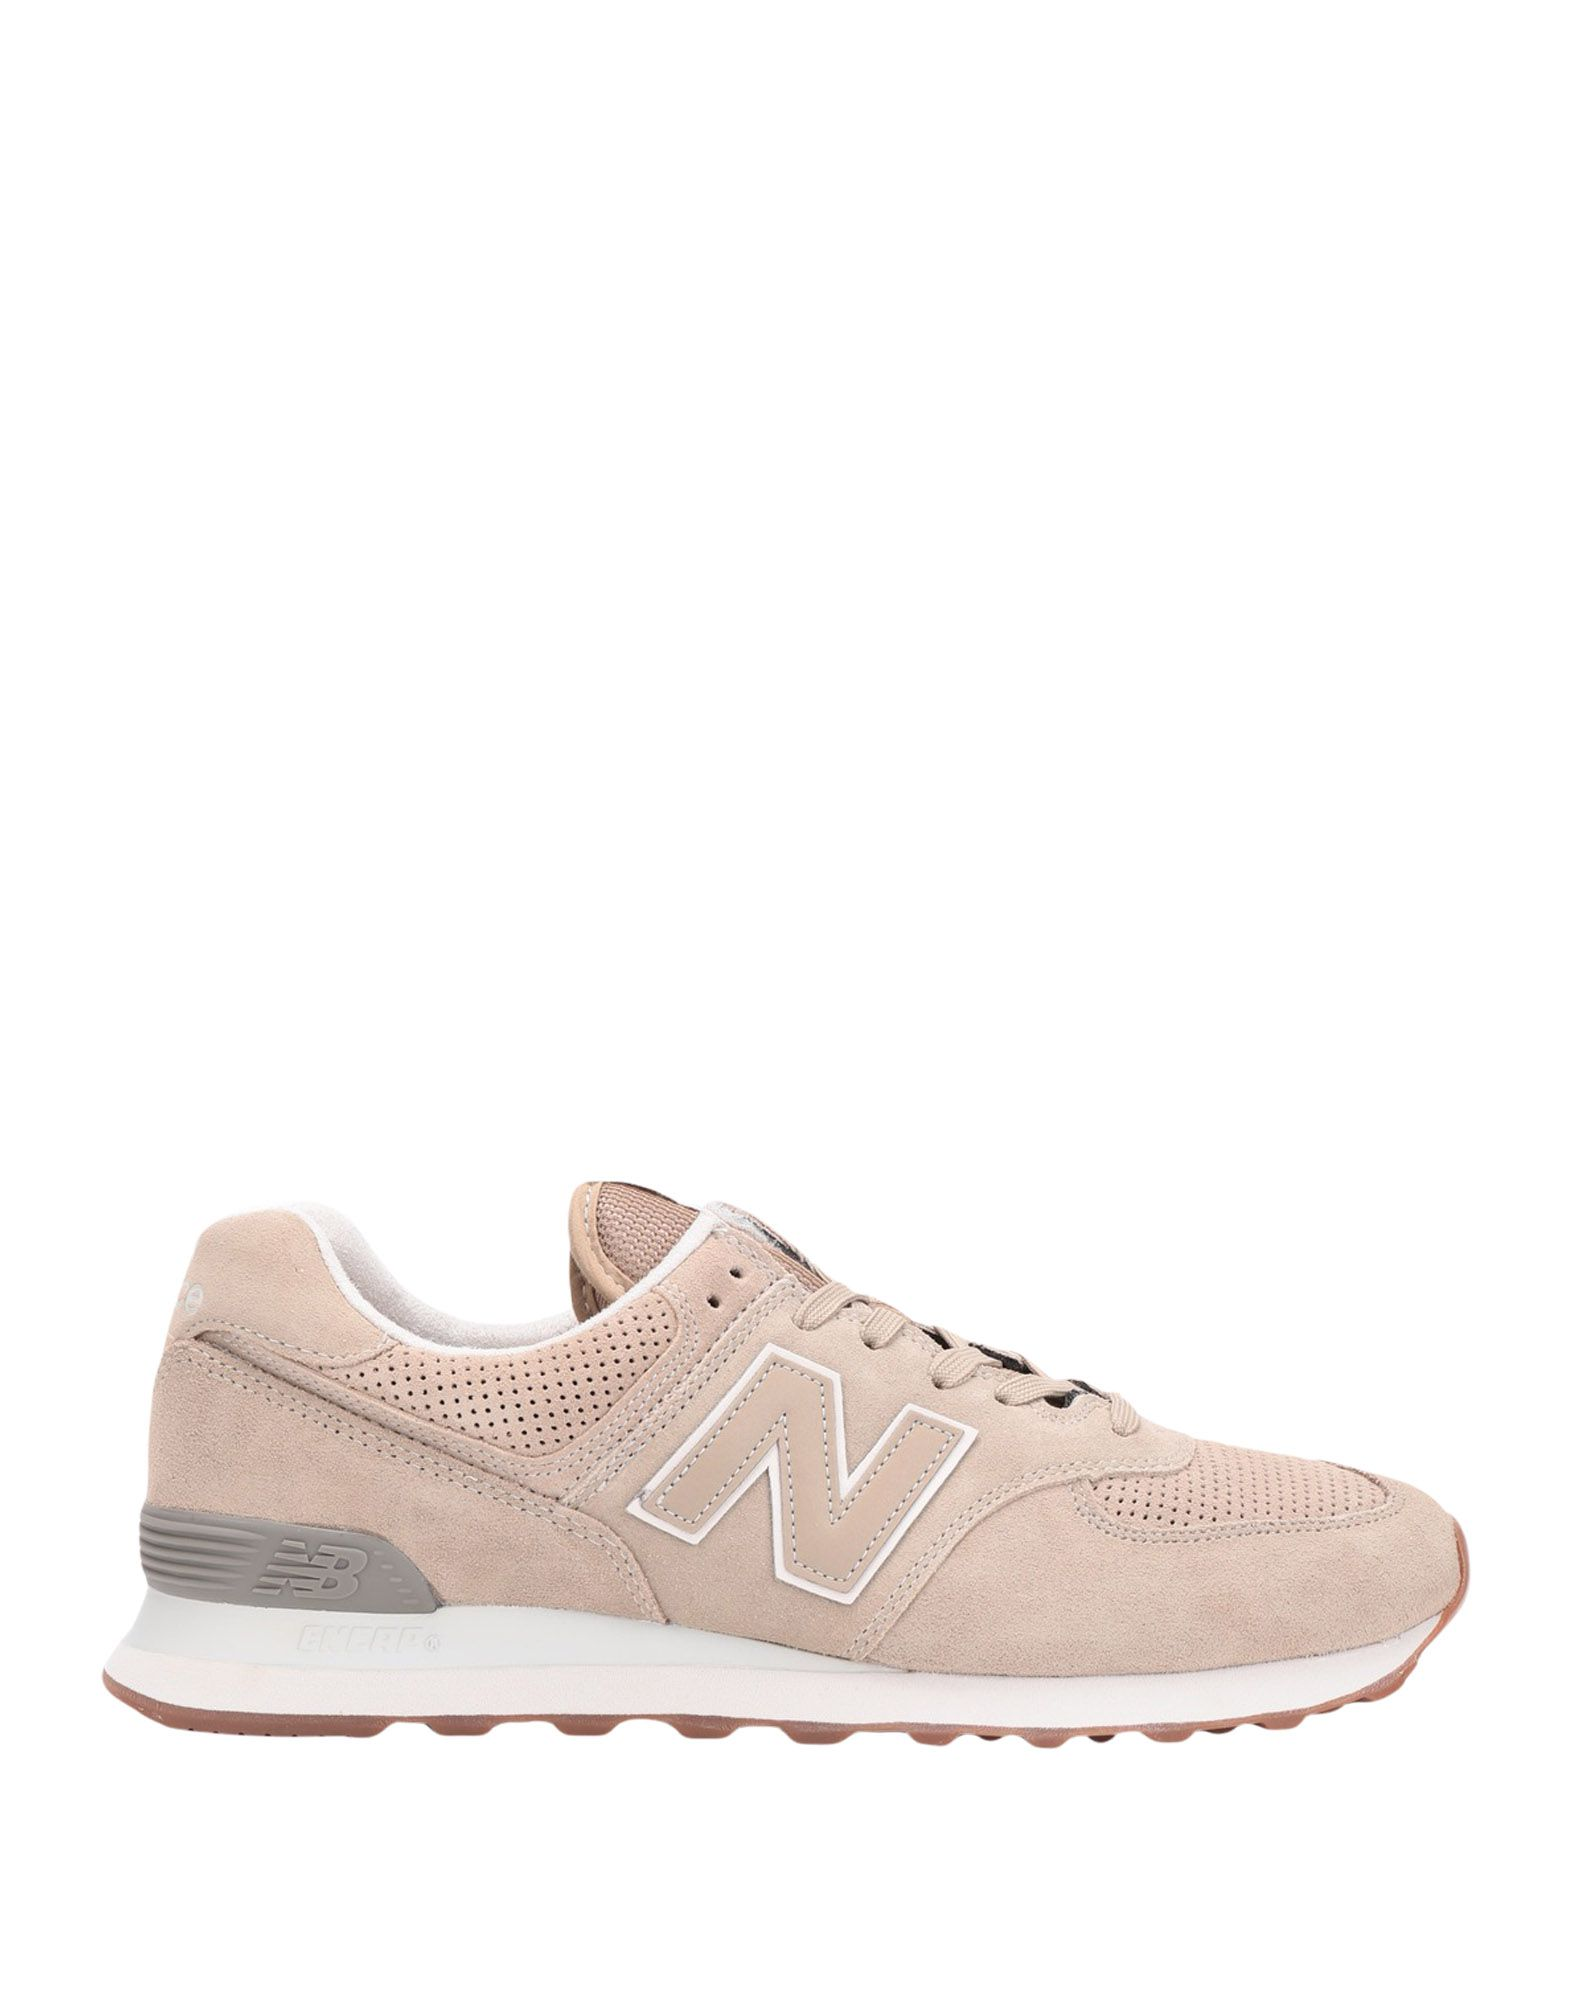 New Balance 574 Suede Sartorial - Sneakers - Men New  Balance Sneakers online on  New United Kingdom - 11553921XQ 7e4880